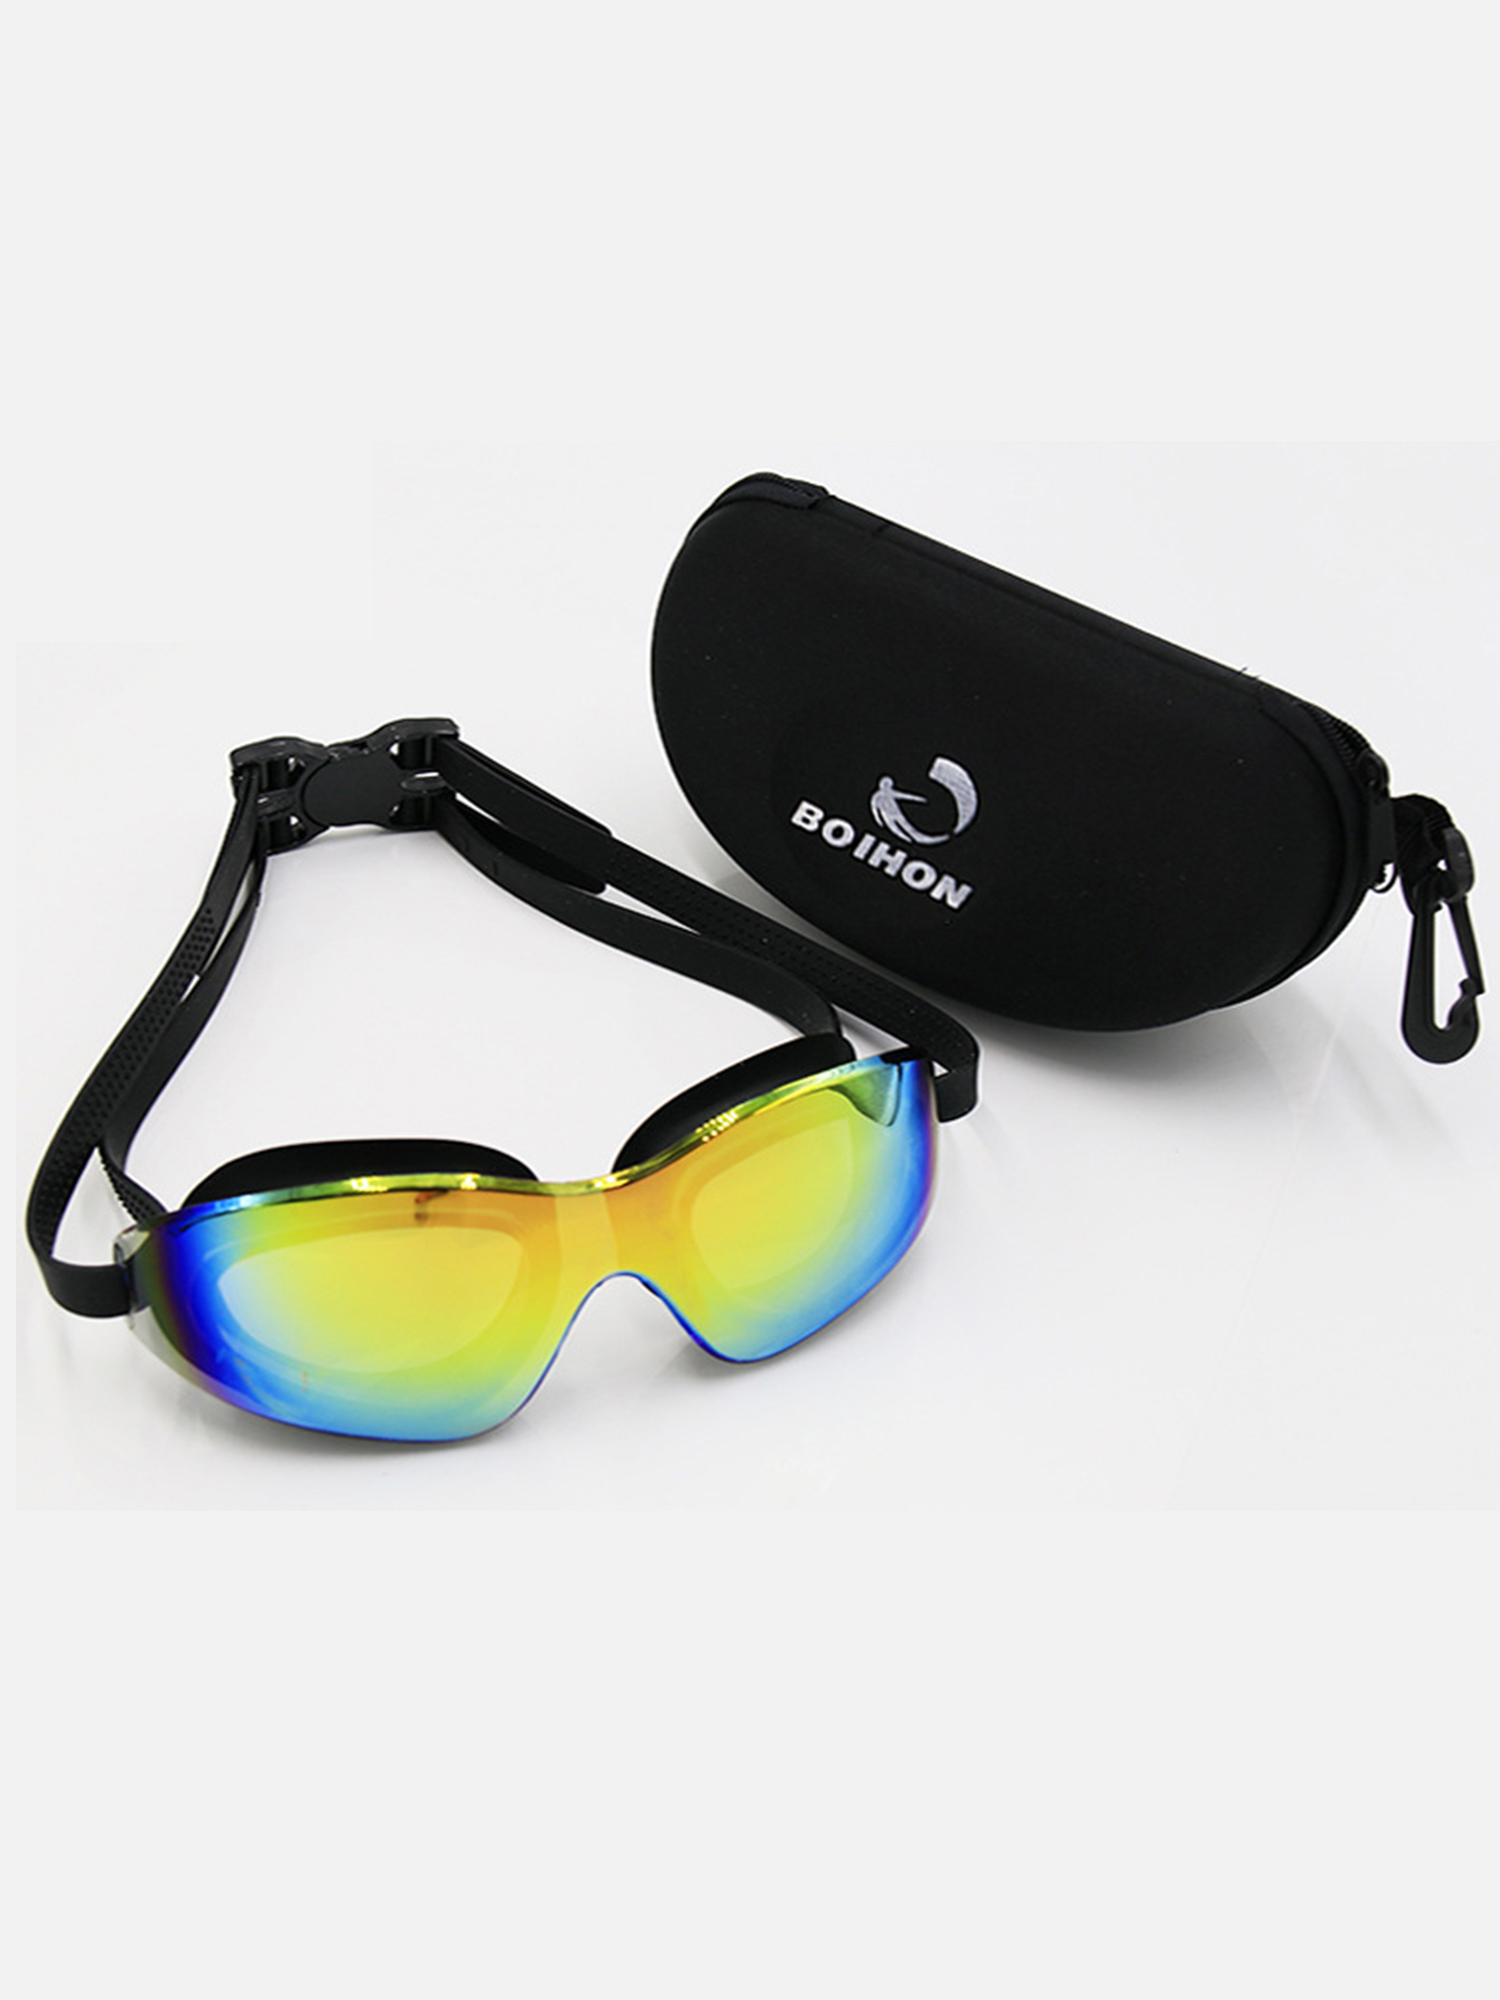 Anyprize Swimming Goggles for Adults, PLo59BU02 No Leaking Anti-Fog UV Protection Swim Goggles for Adult Men Women Youth... by